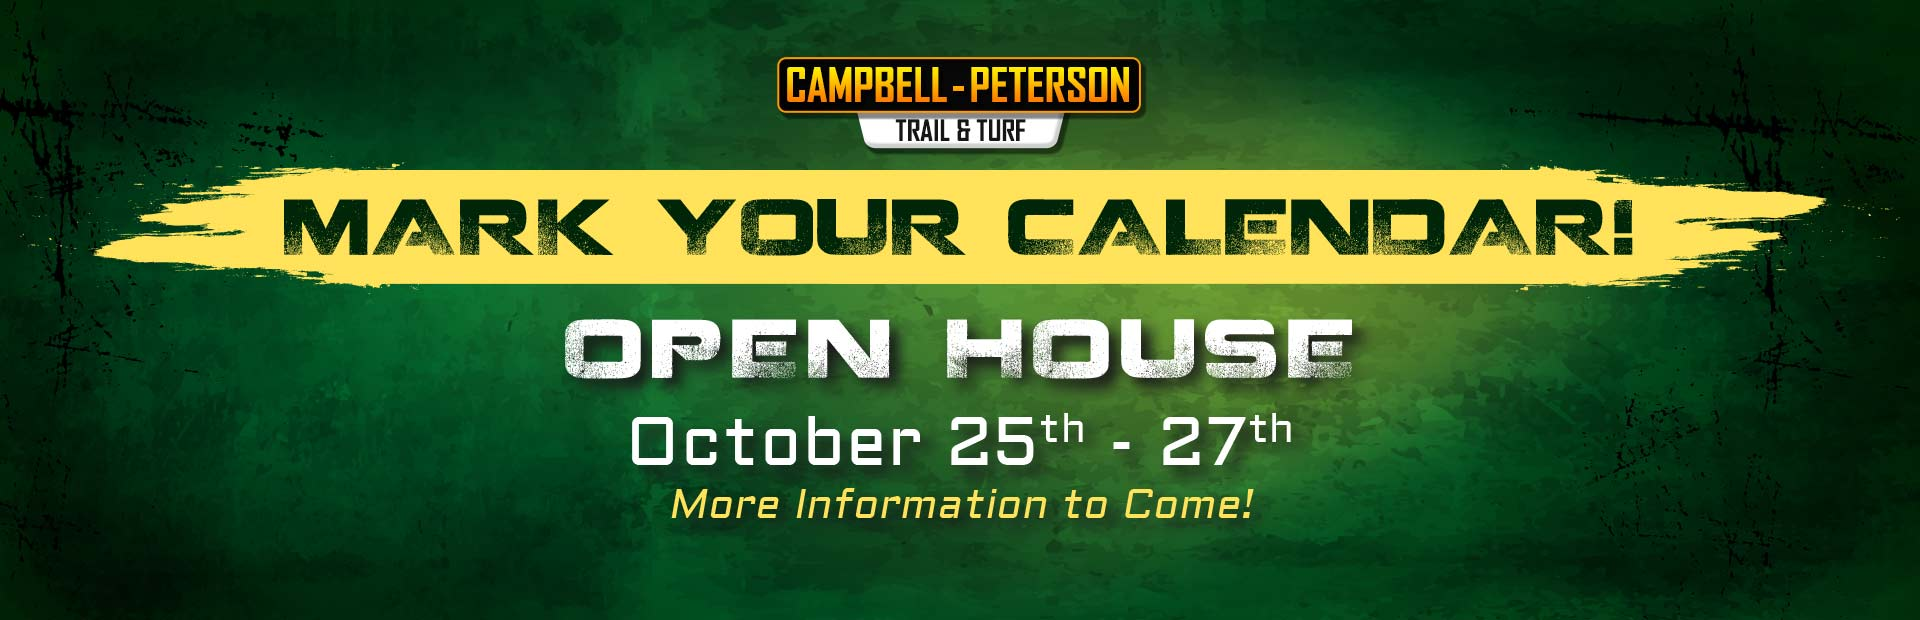 Join us for our Open House October 25th through 27th! Check back for more information.